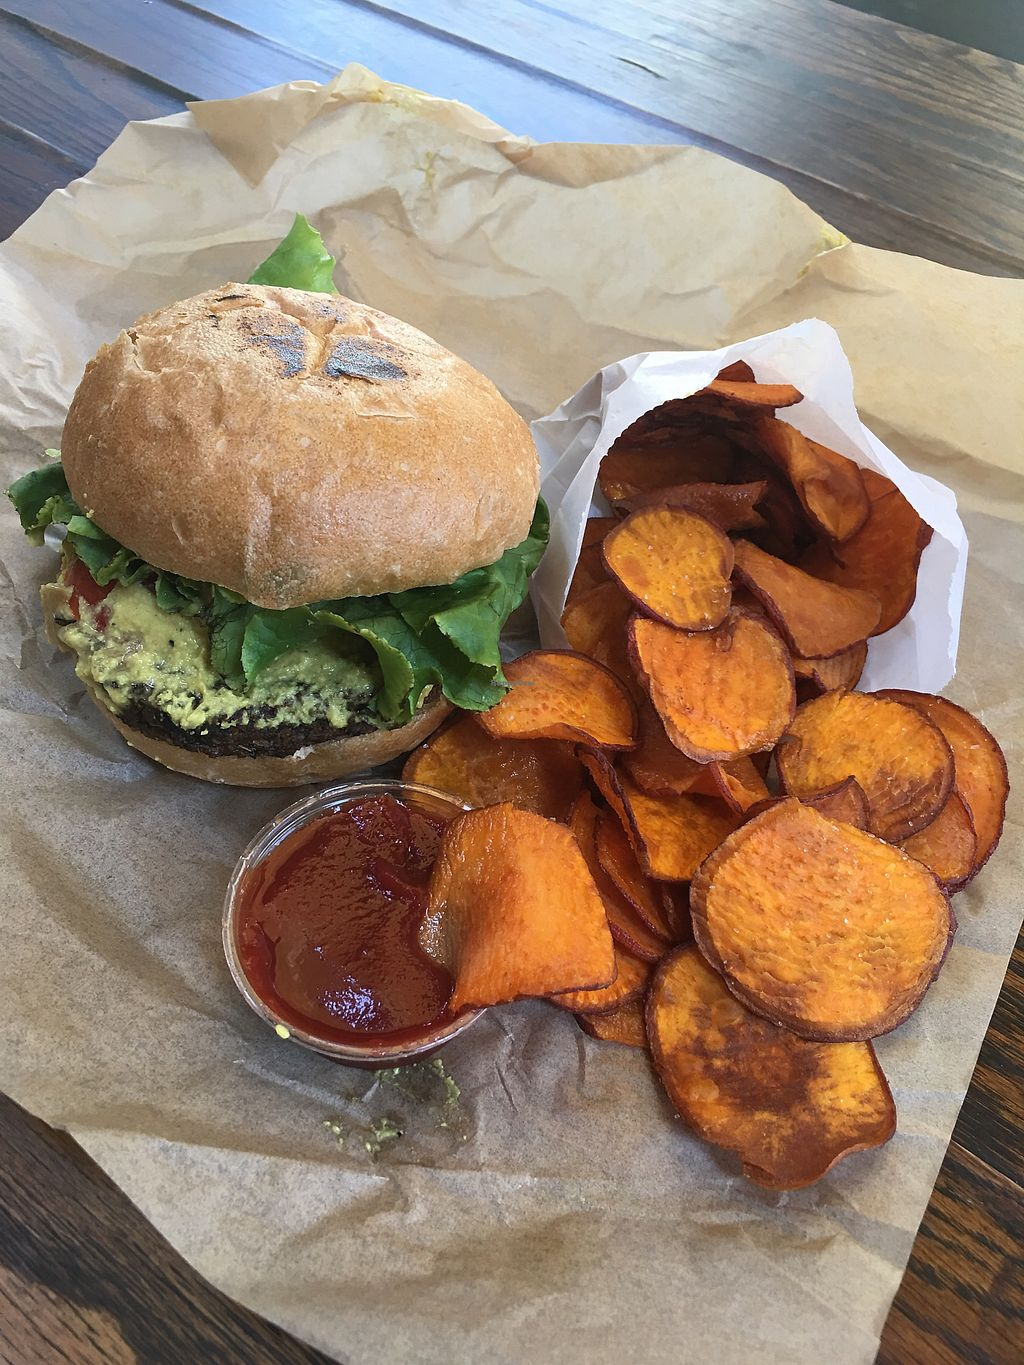 """Photo of Evolution Fast Food  by <a href=""""/members/profile/Lydiacroson"""">Lydiacroson</a> <br/>Awesome cruelty free food!  <br/> August 30, 2017  - <a href='/contact/abuse/image/19731/299096'>Report</a>"""